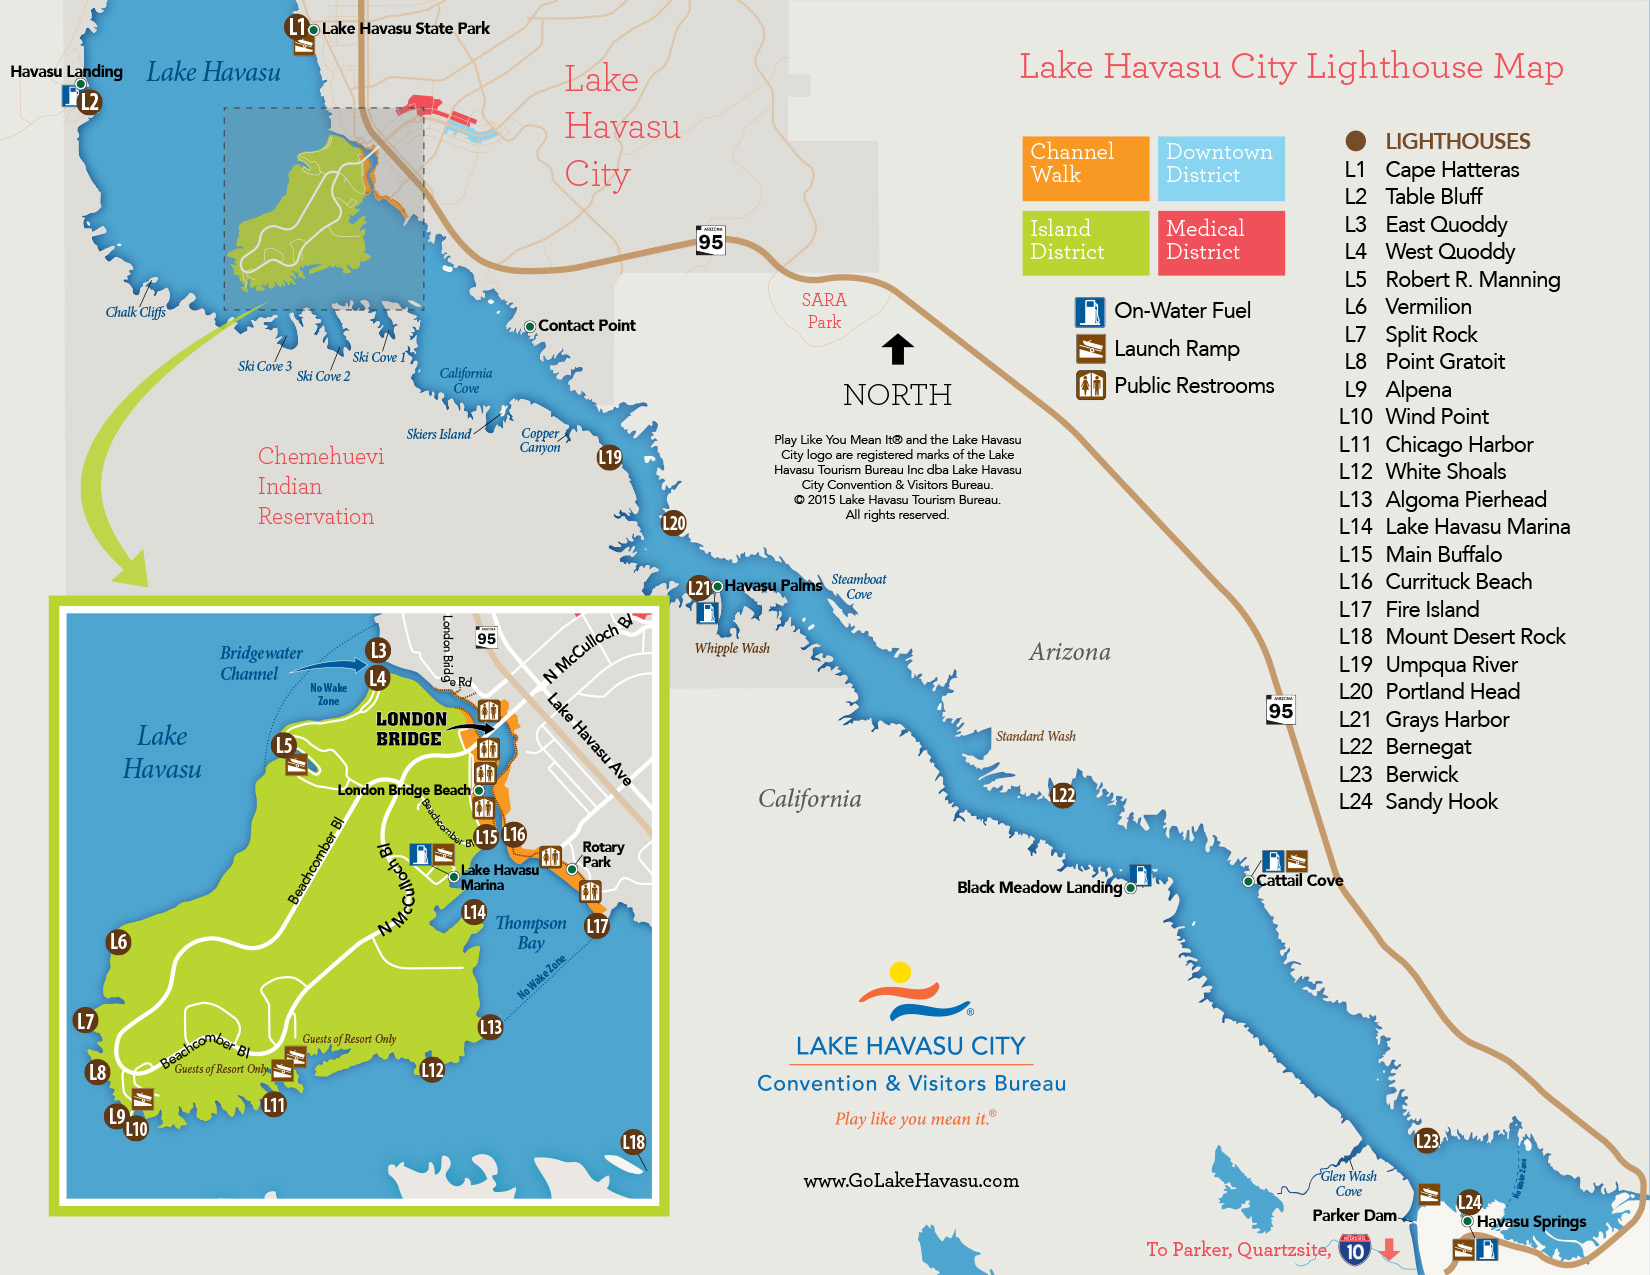 LHCCVB_Lighthouse_Map